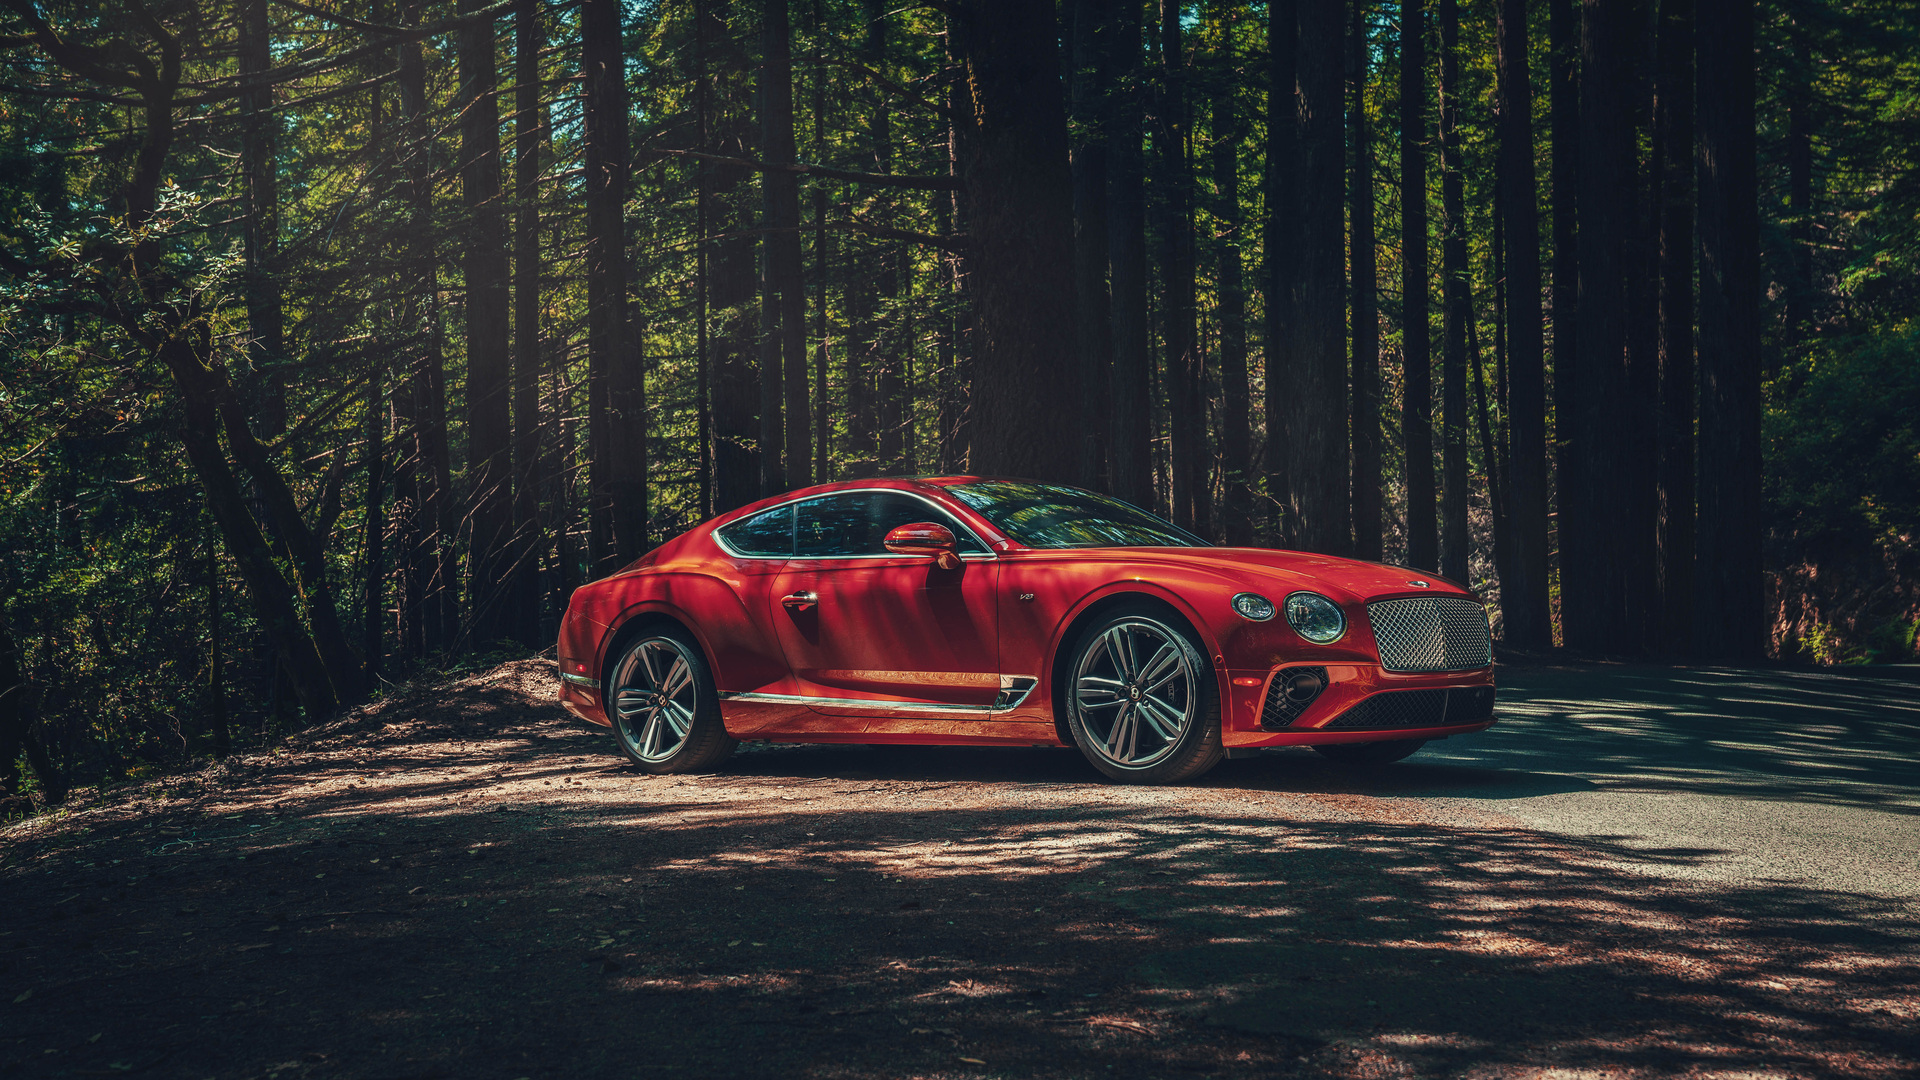 2020-bentley-continental-gt-v8-4k-g5.jpg